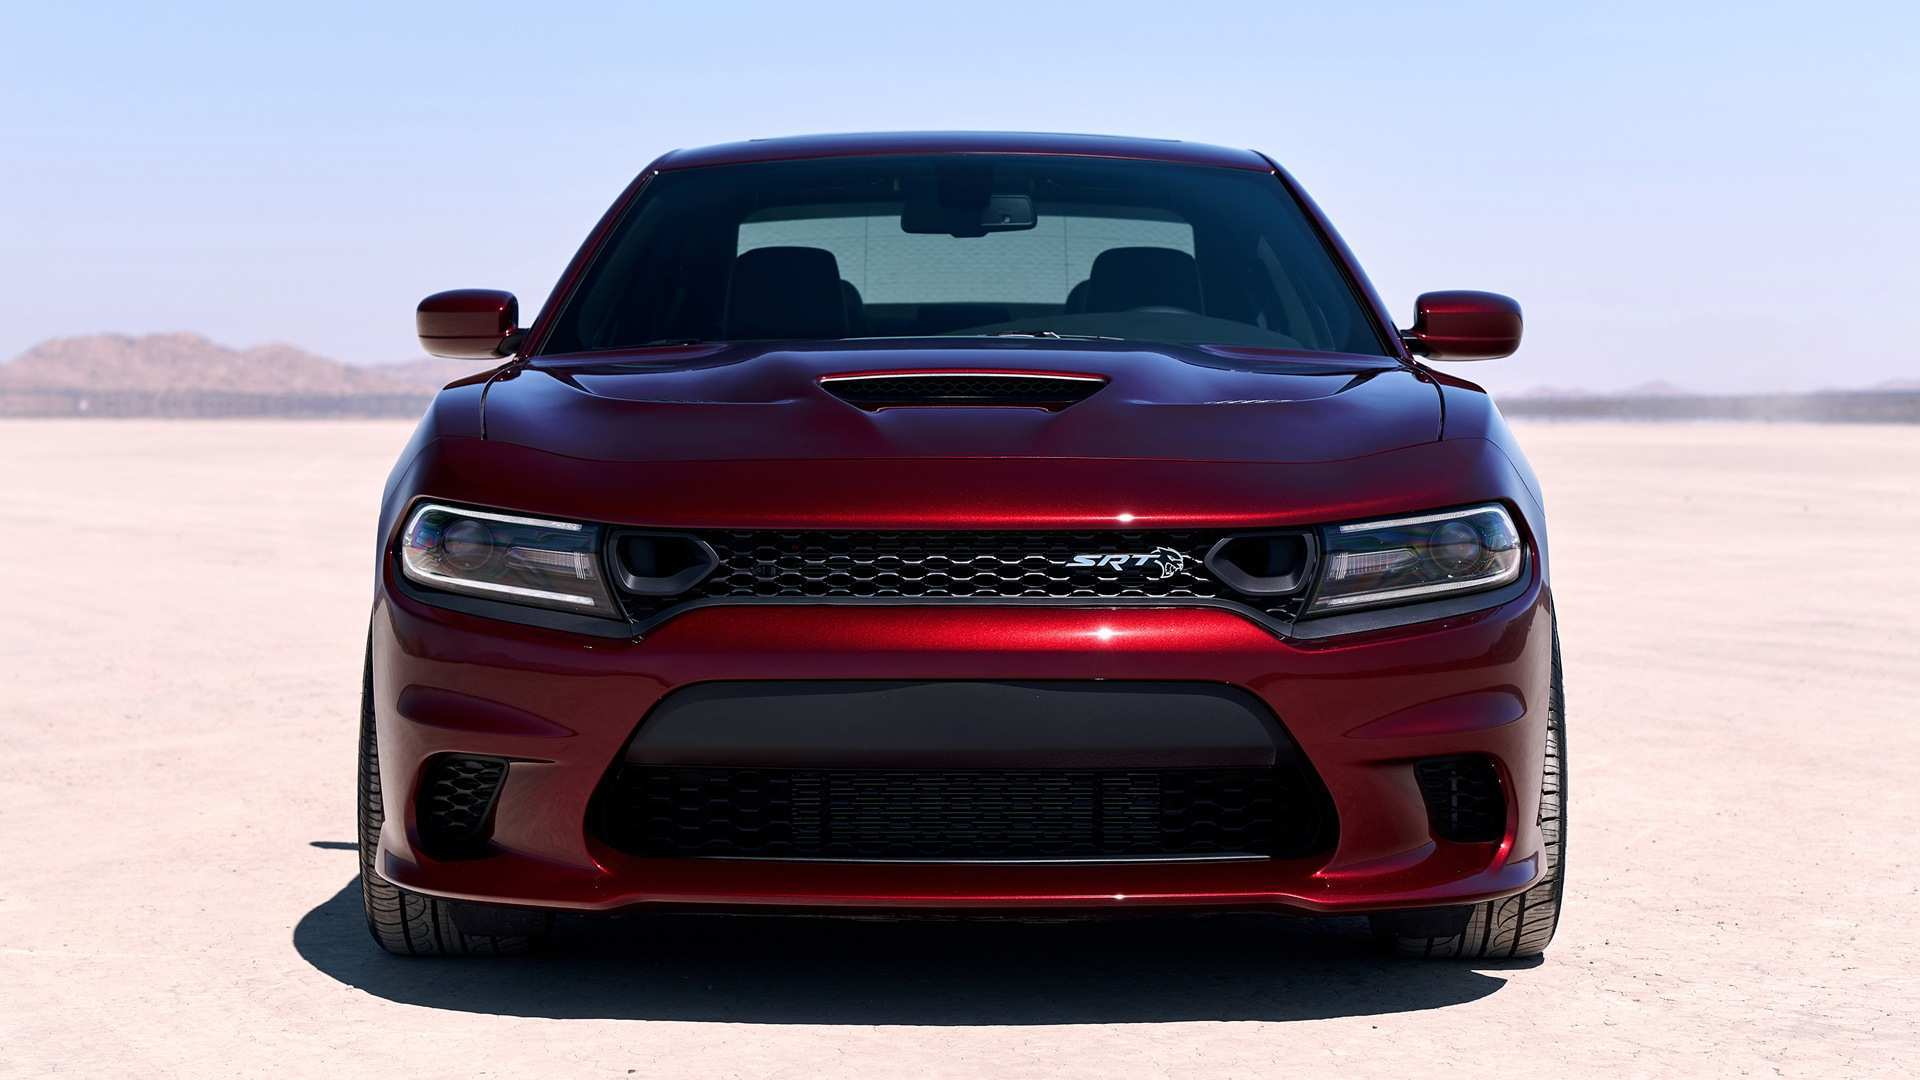 67 New 2020 Dodge Charger Hellcat History